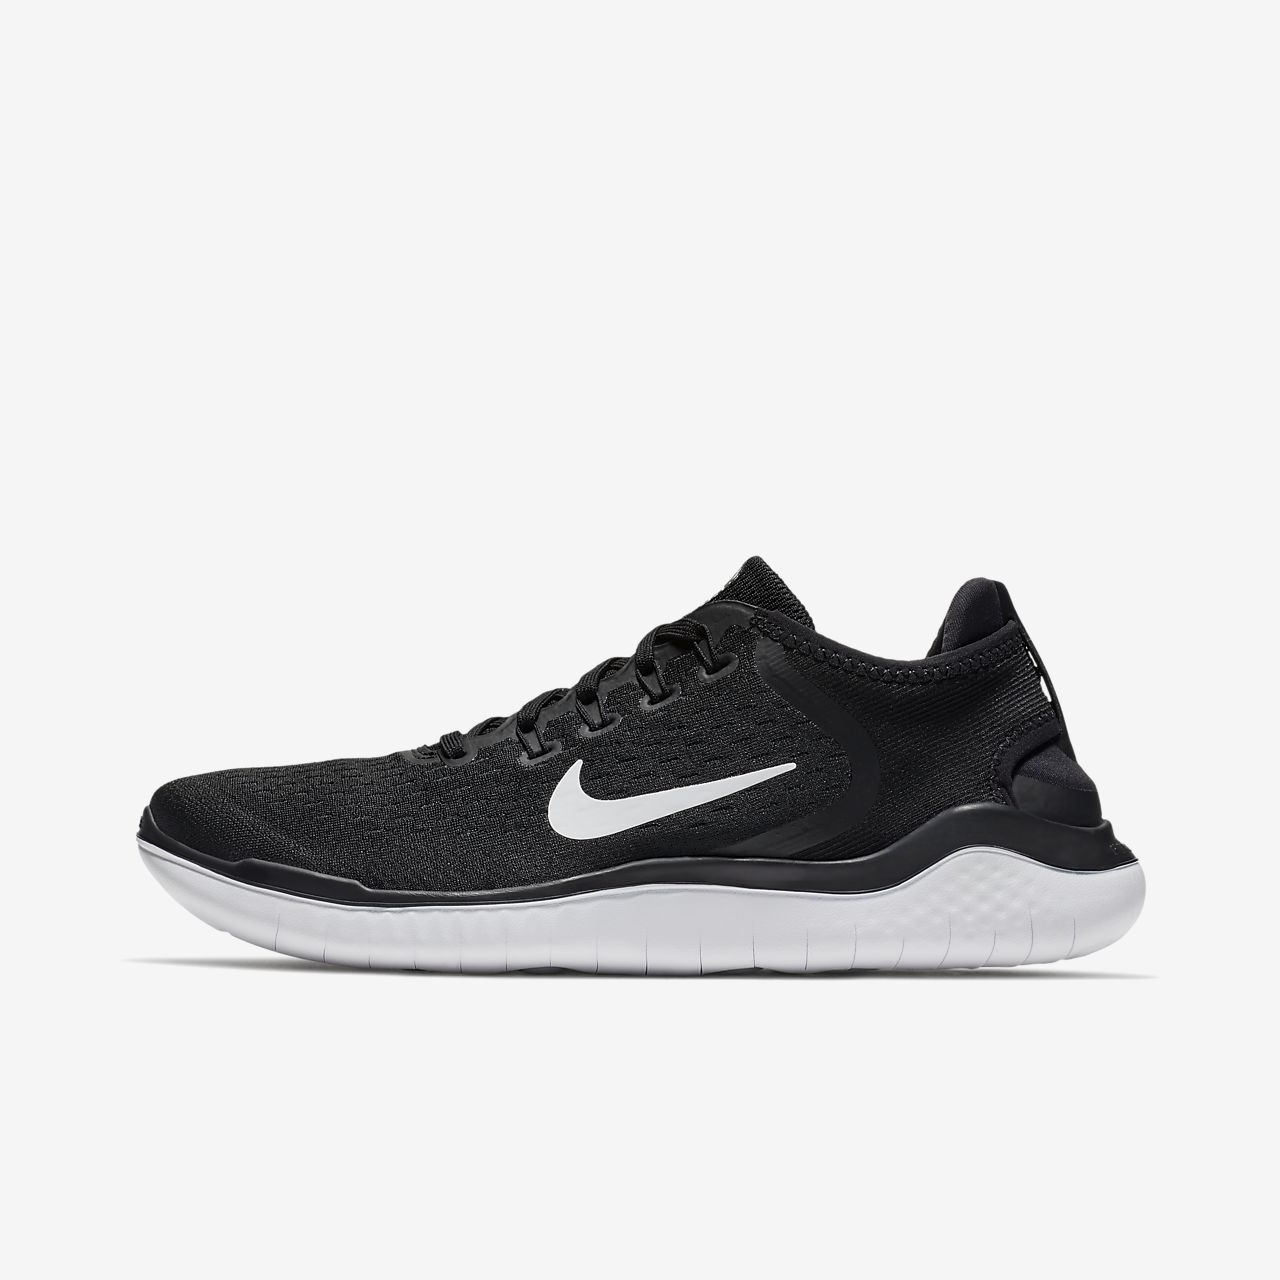 new style 04452 1fbf2 ... Nike Free RN 2018 Mens Running Shoe